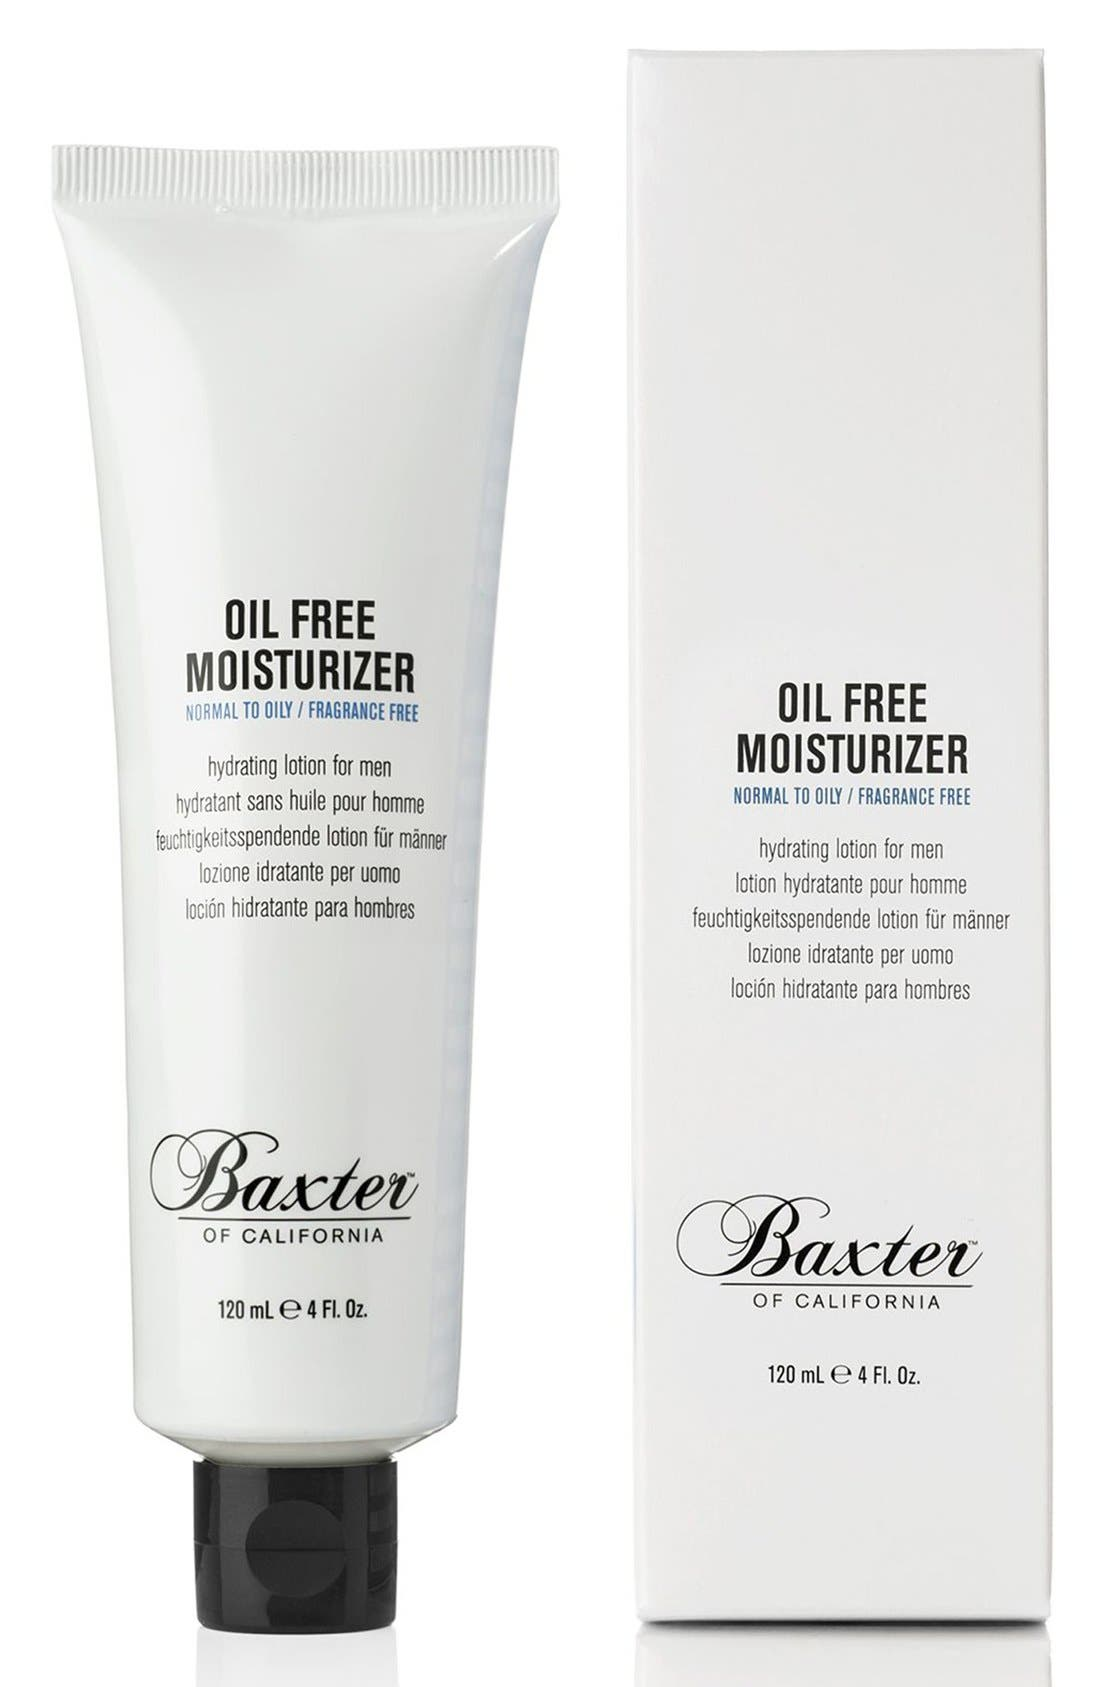 BAXTER OF CALIFORNIA, Oil Free Moisturizer, Alternate thumbnail 2, color, NO COLOR